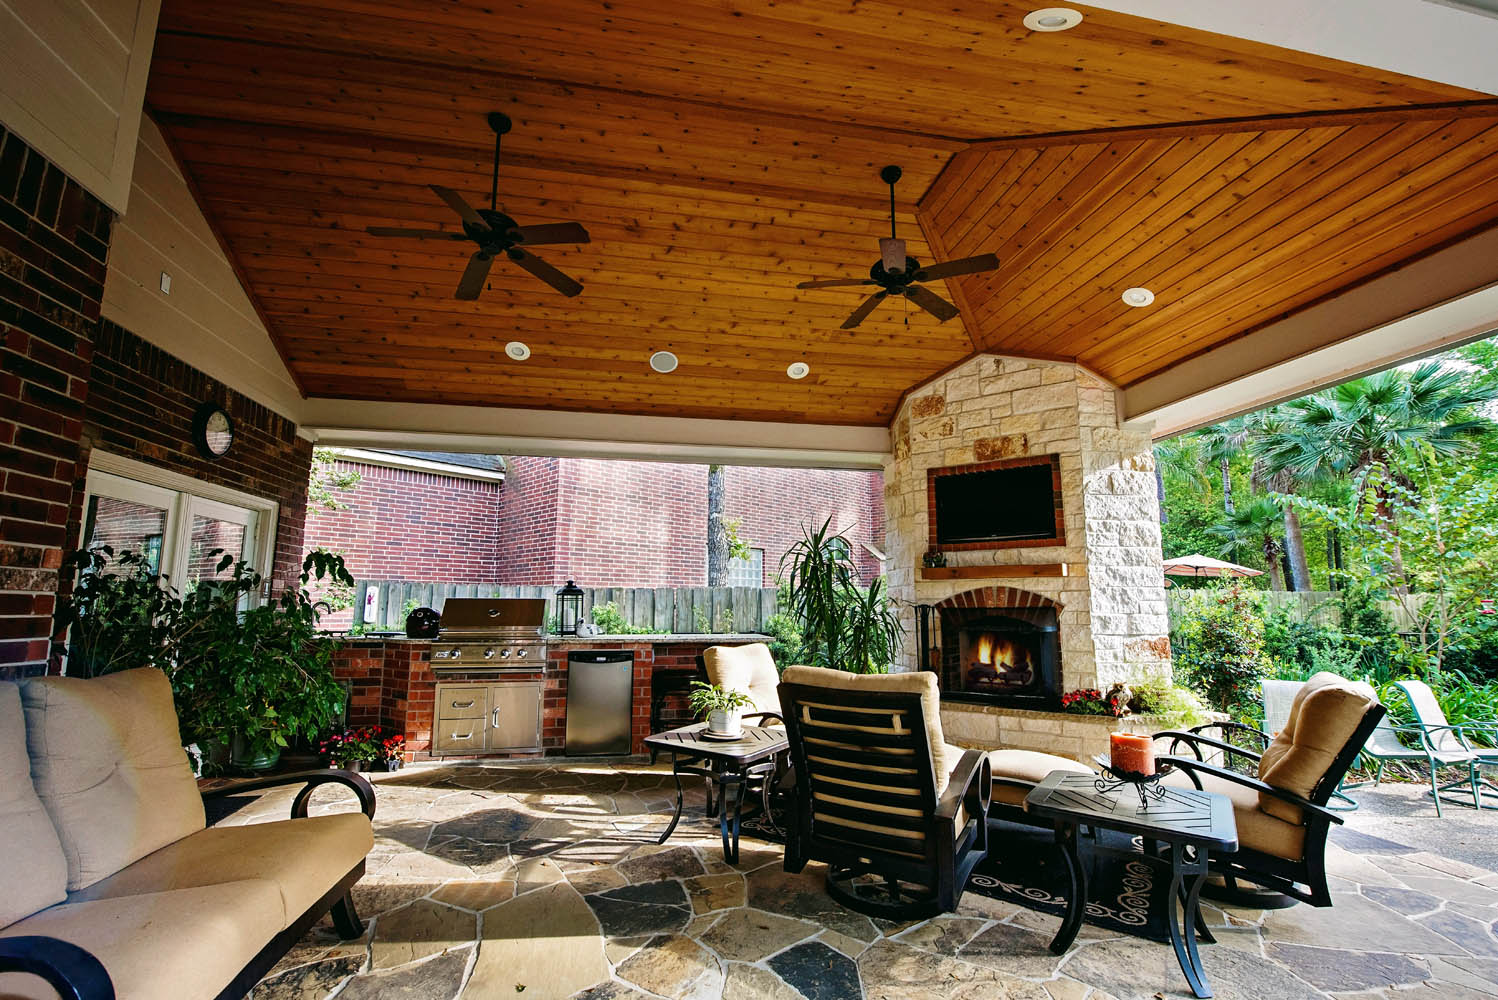 Houston Outdoor Kitchens Spring Outdoor Fireplace Photos .